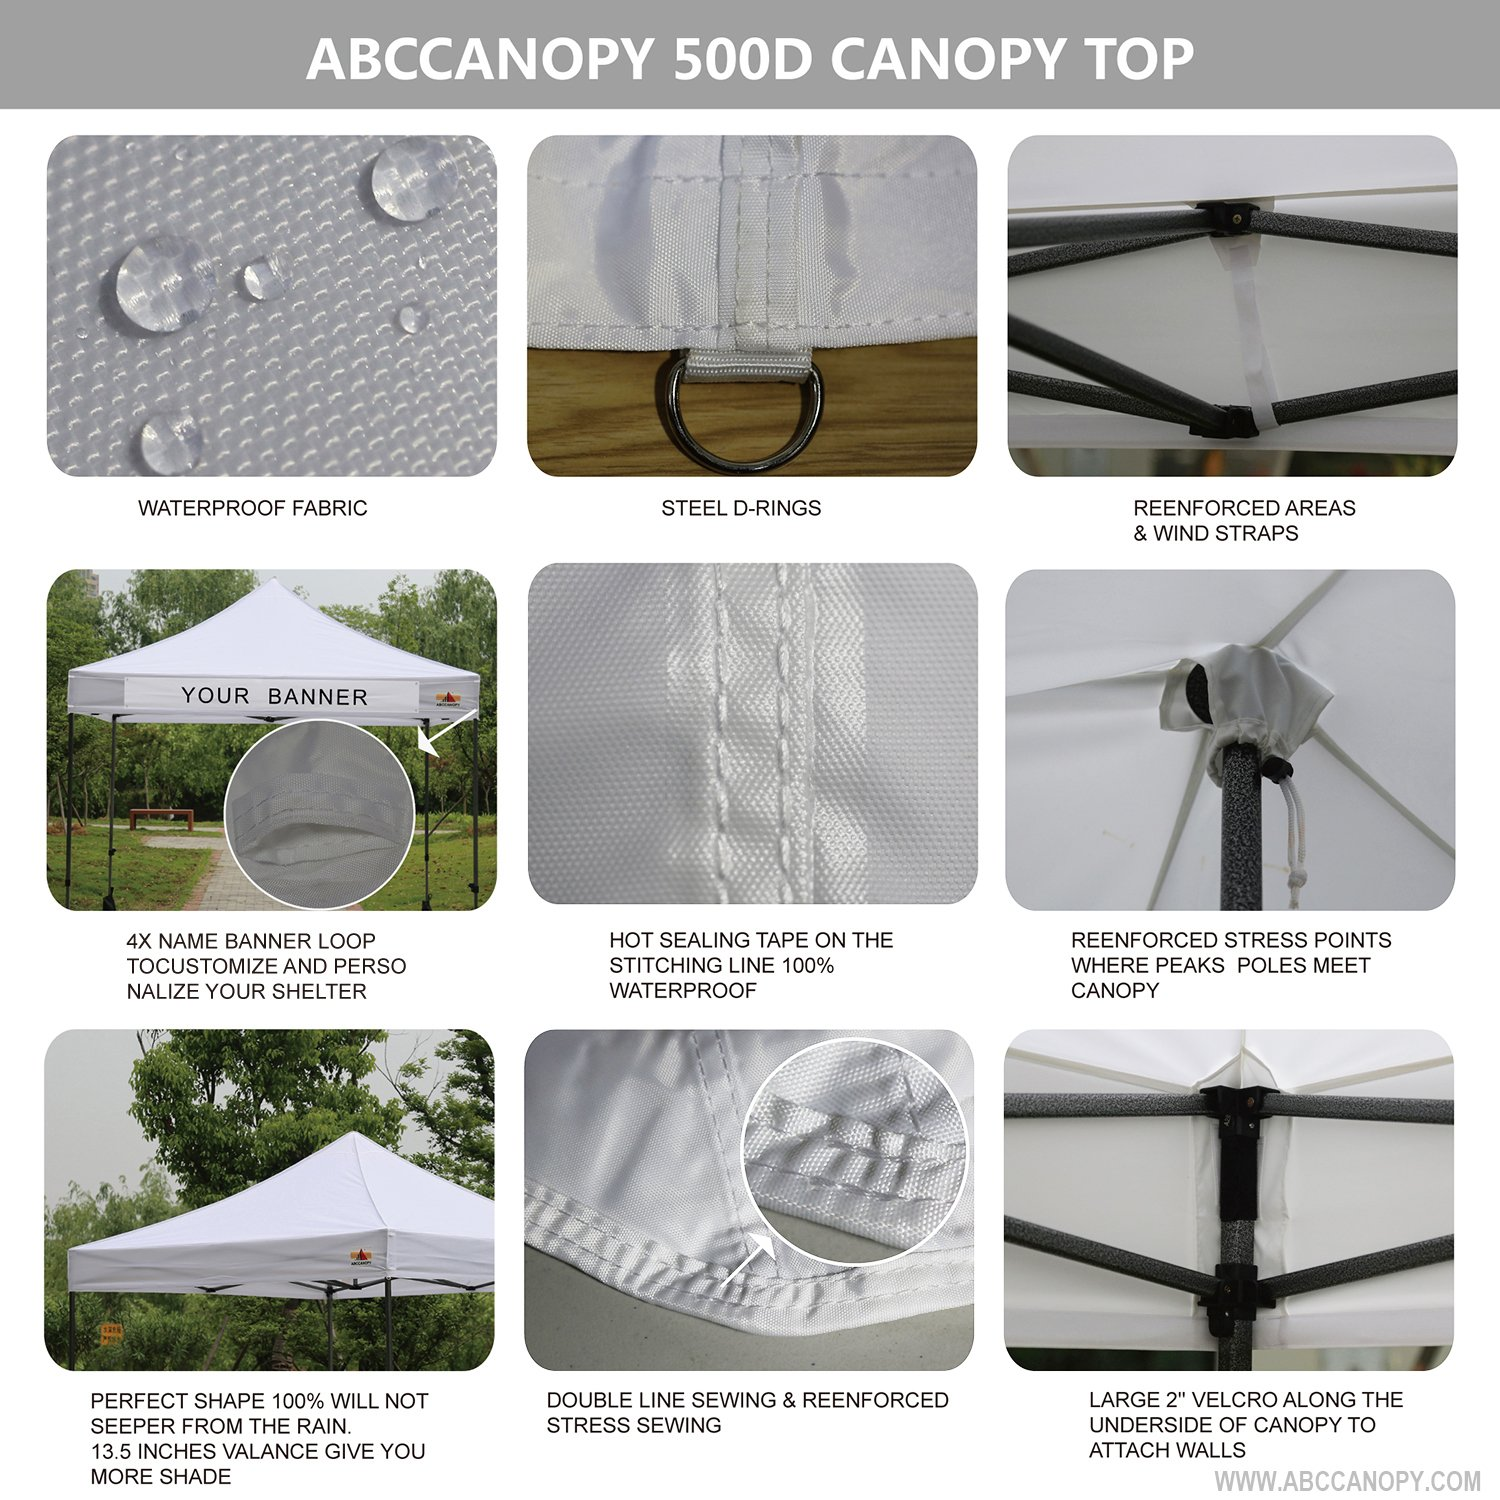 ABCCANOPY 10 x10 Pop Up Canopy Commercial Event Canopy Market Stall Canopy Booth Outdoor Trade Show Booth With Wheeled Carry Bags by abccanopy (Image #5)